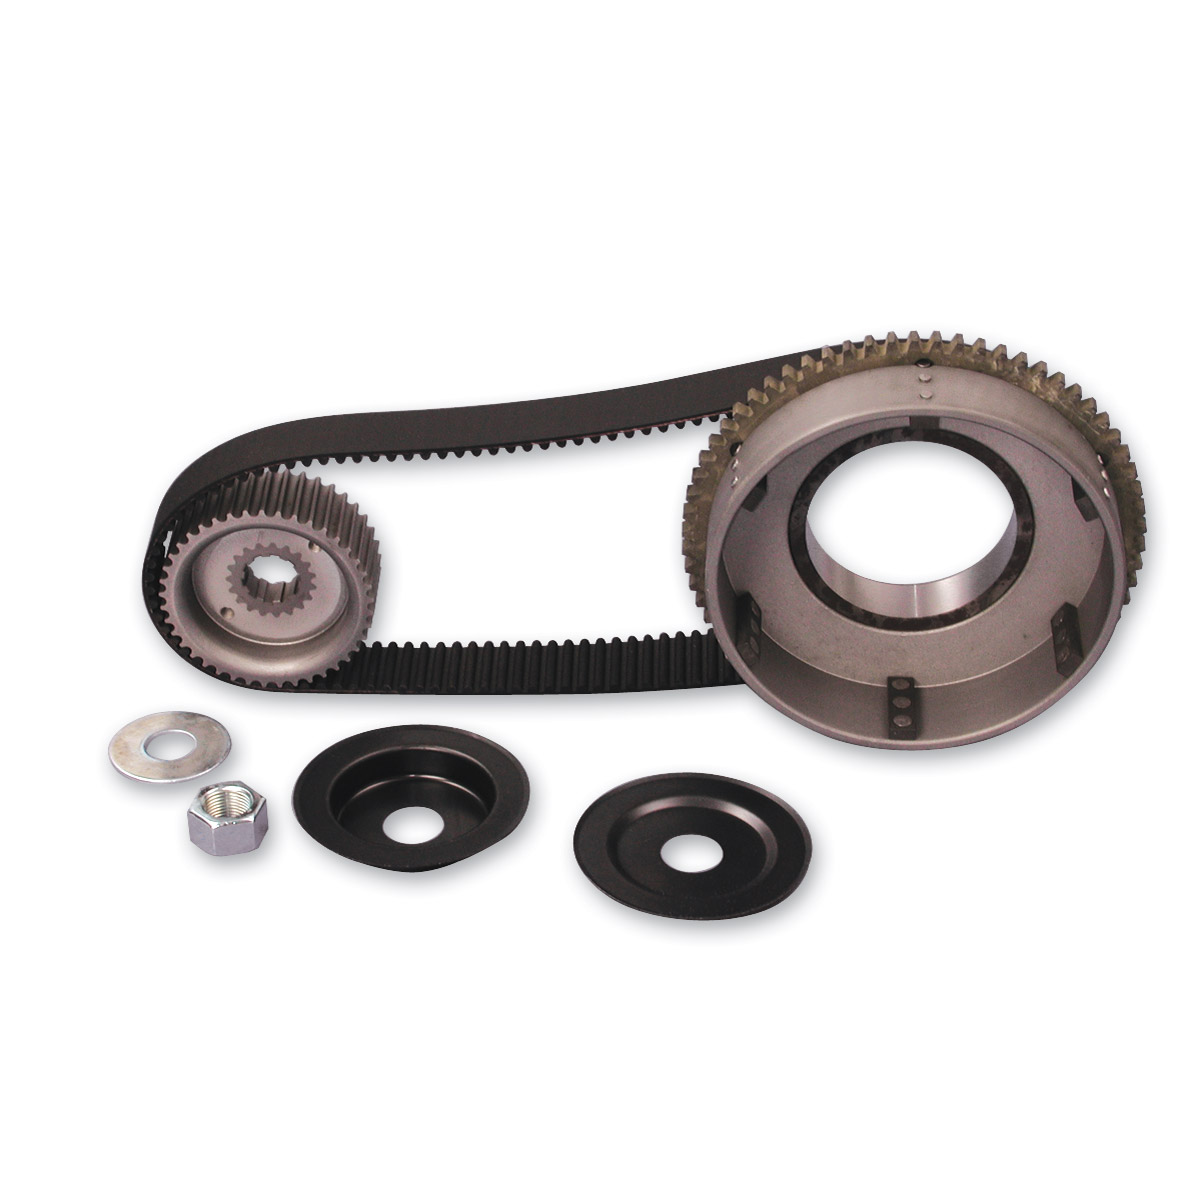 BDL 8mm 1-1/2″ Kit for Kick Start, Spline Shaft